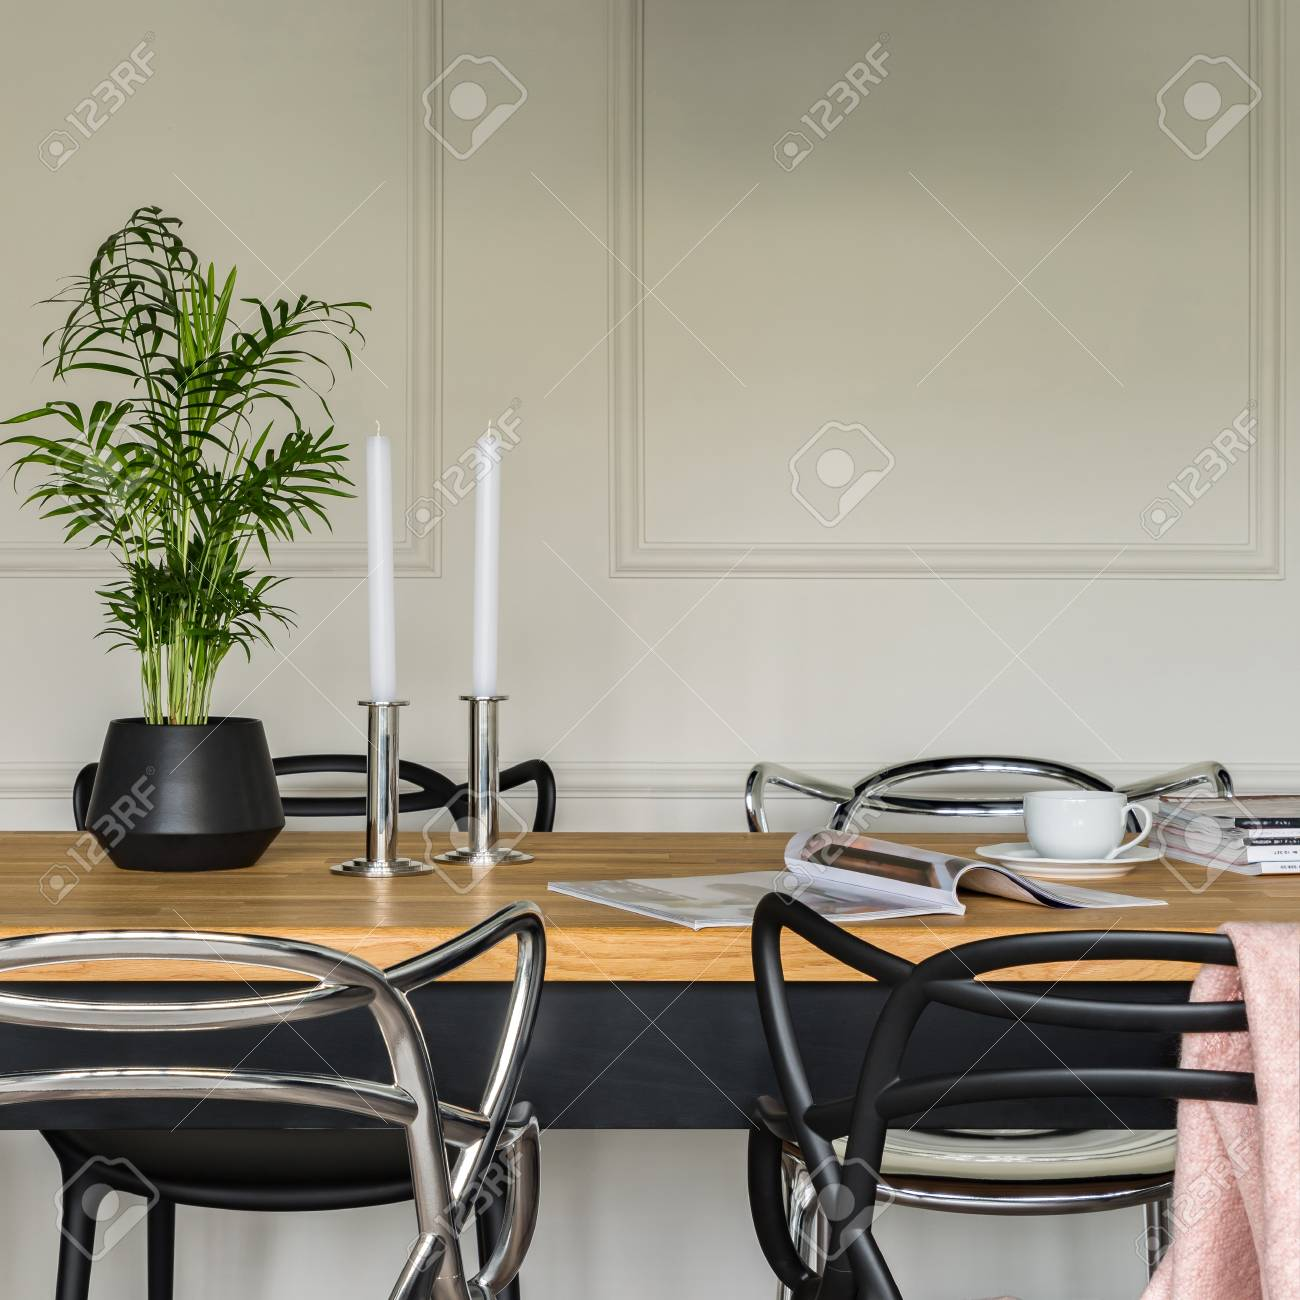 Swell Wooden Dining Table With Modern Black And Silver Chairs Machost Co Dining Chair Design Ideas Machostcouk